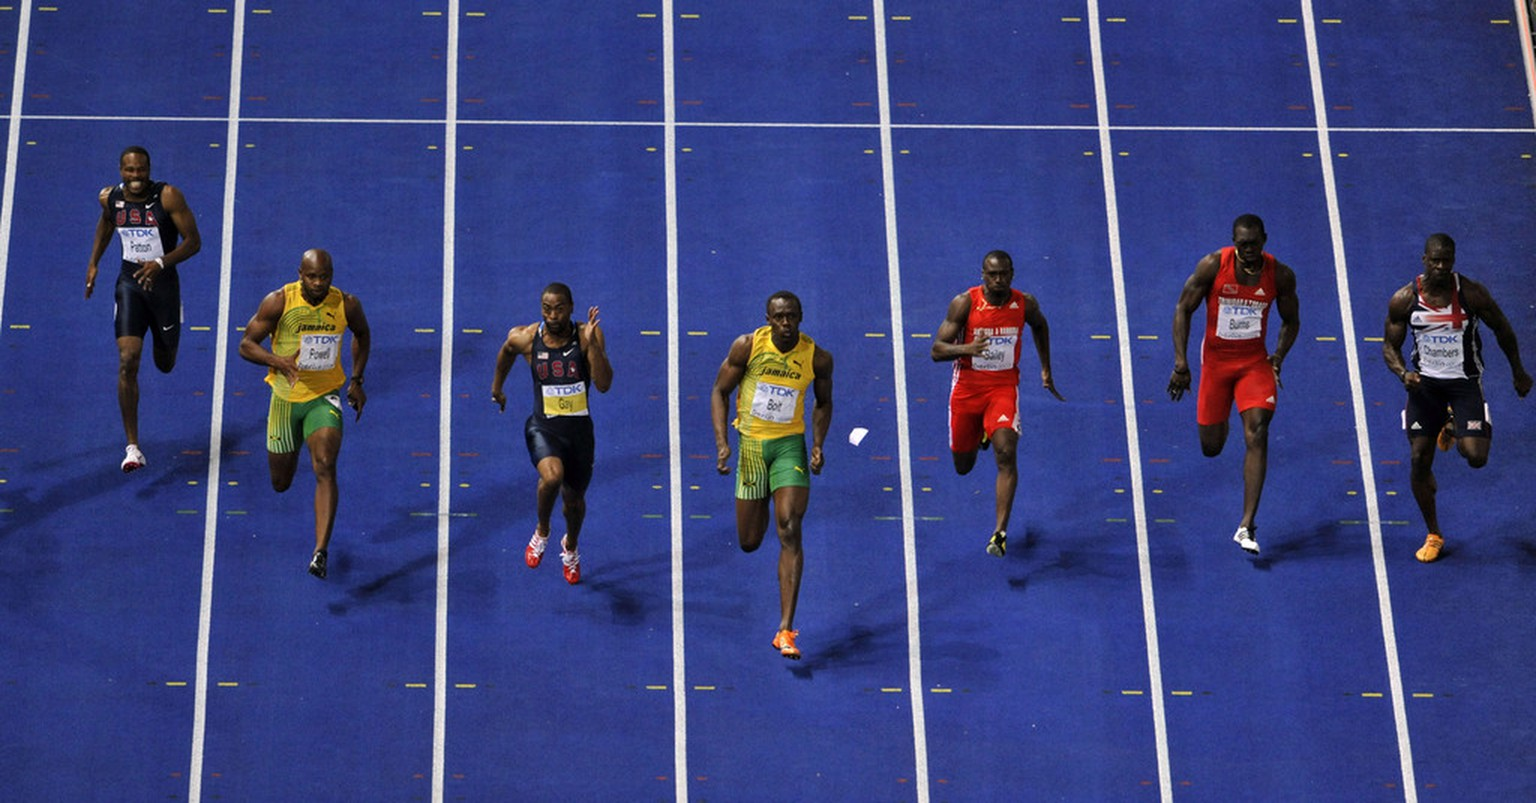 Jamaica's Usain Bolt, center, runs to setting a new Men's 100m World Record during the World Athletics Championships in Berlin on Sunday, Aug. 16, 2009.  (AP Photo/Gero Breloer)